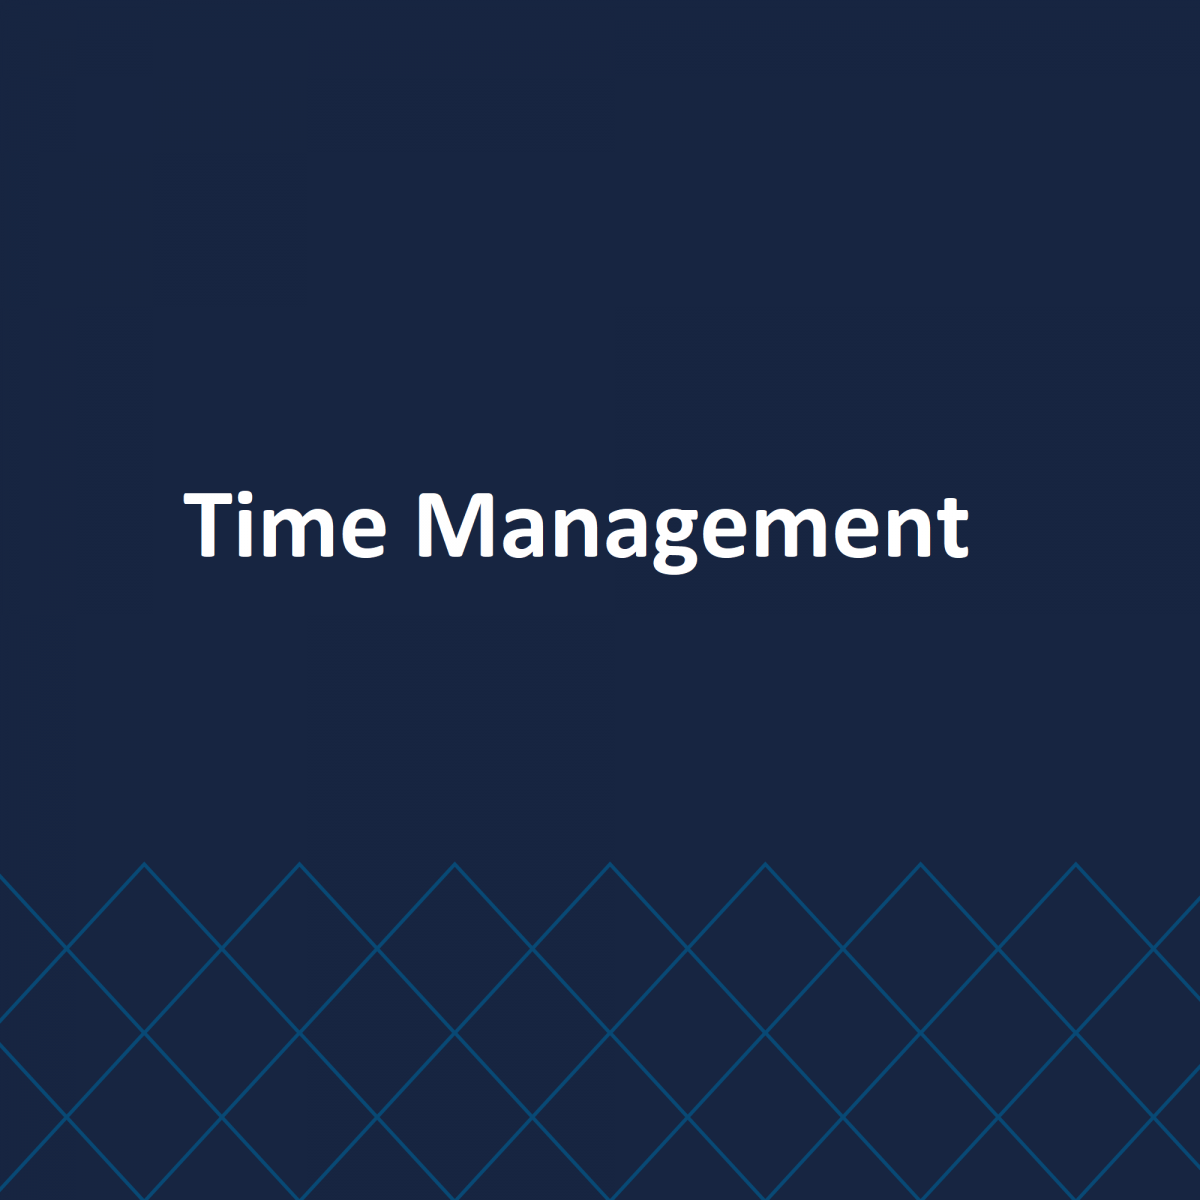 Time Management & Multi-Tasking in a Business